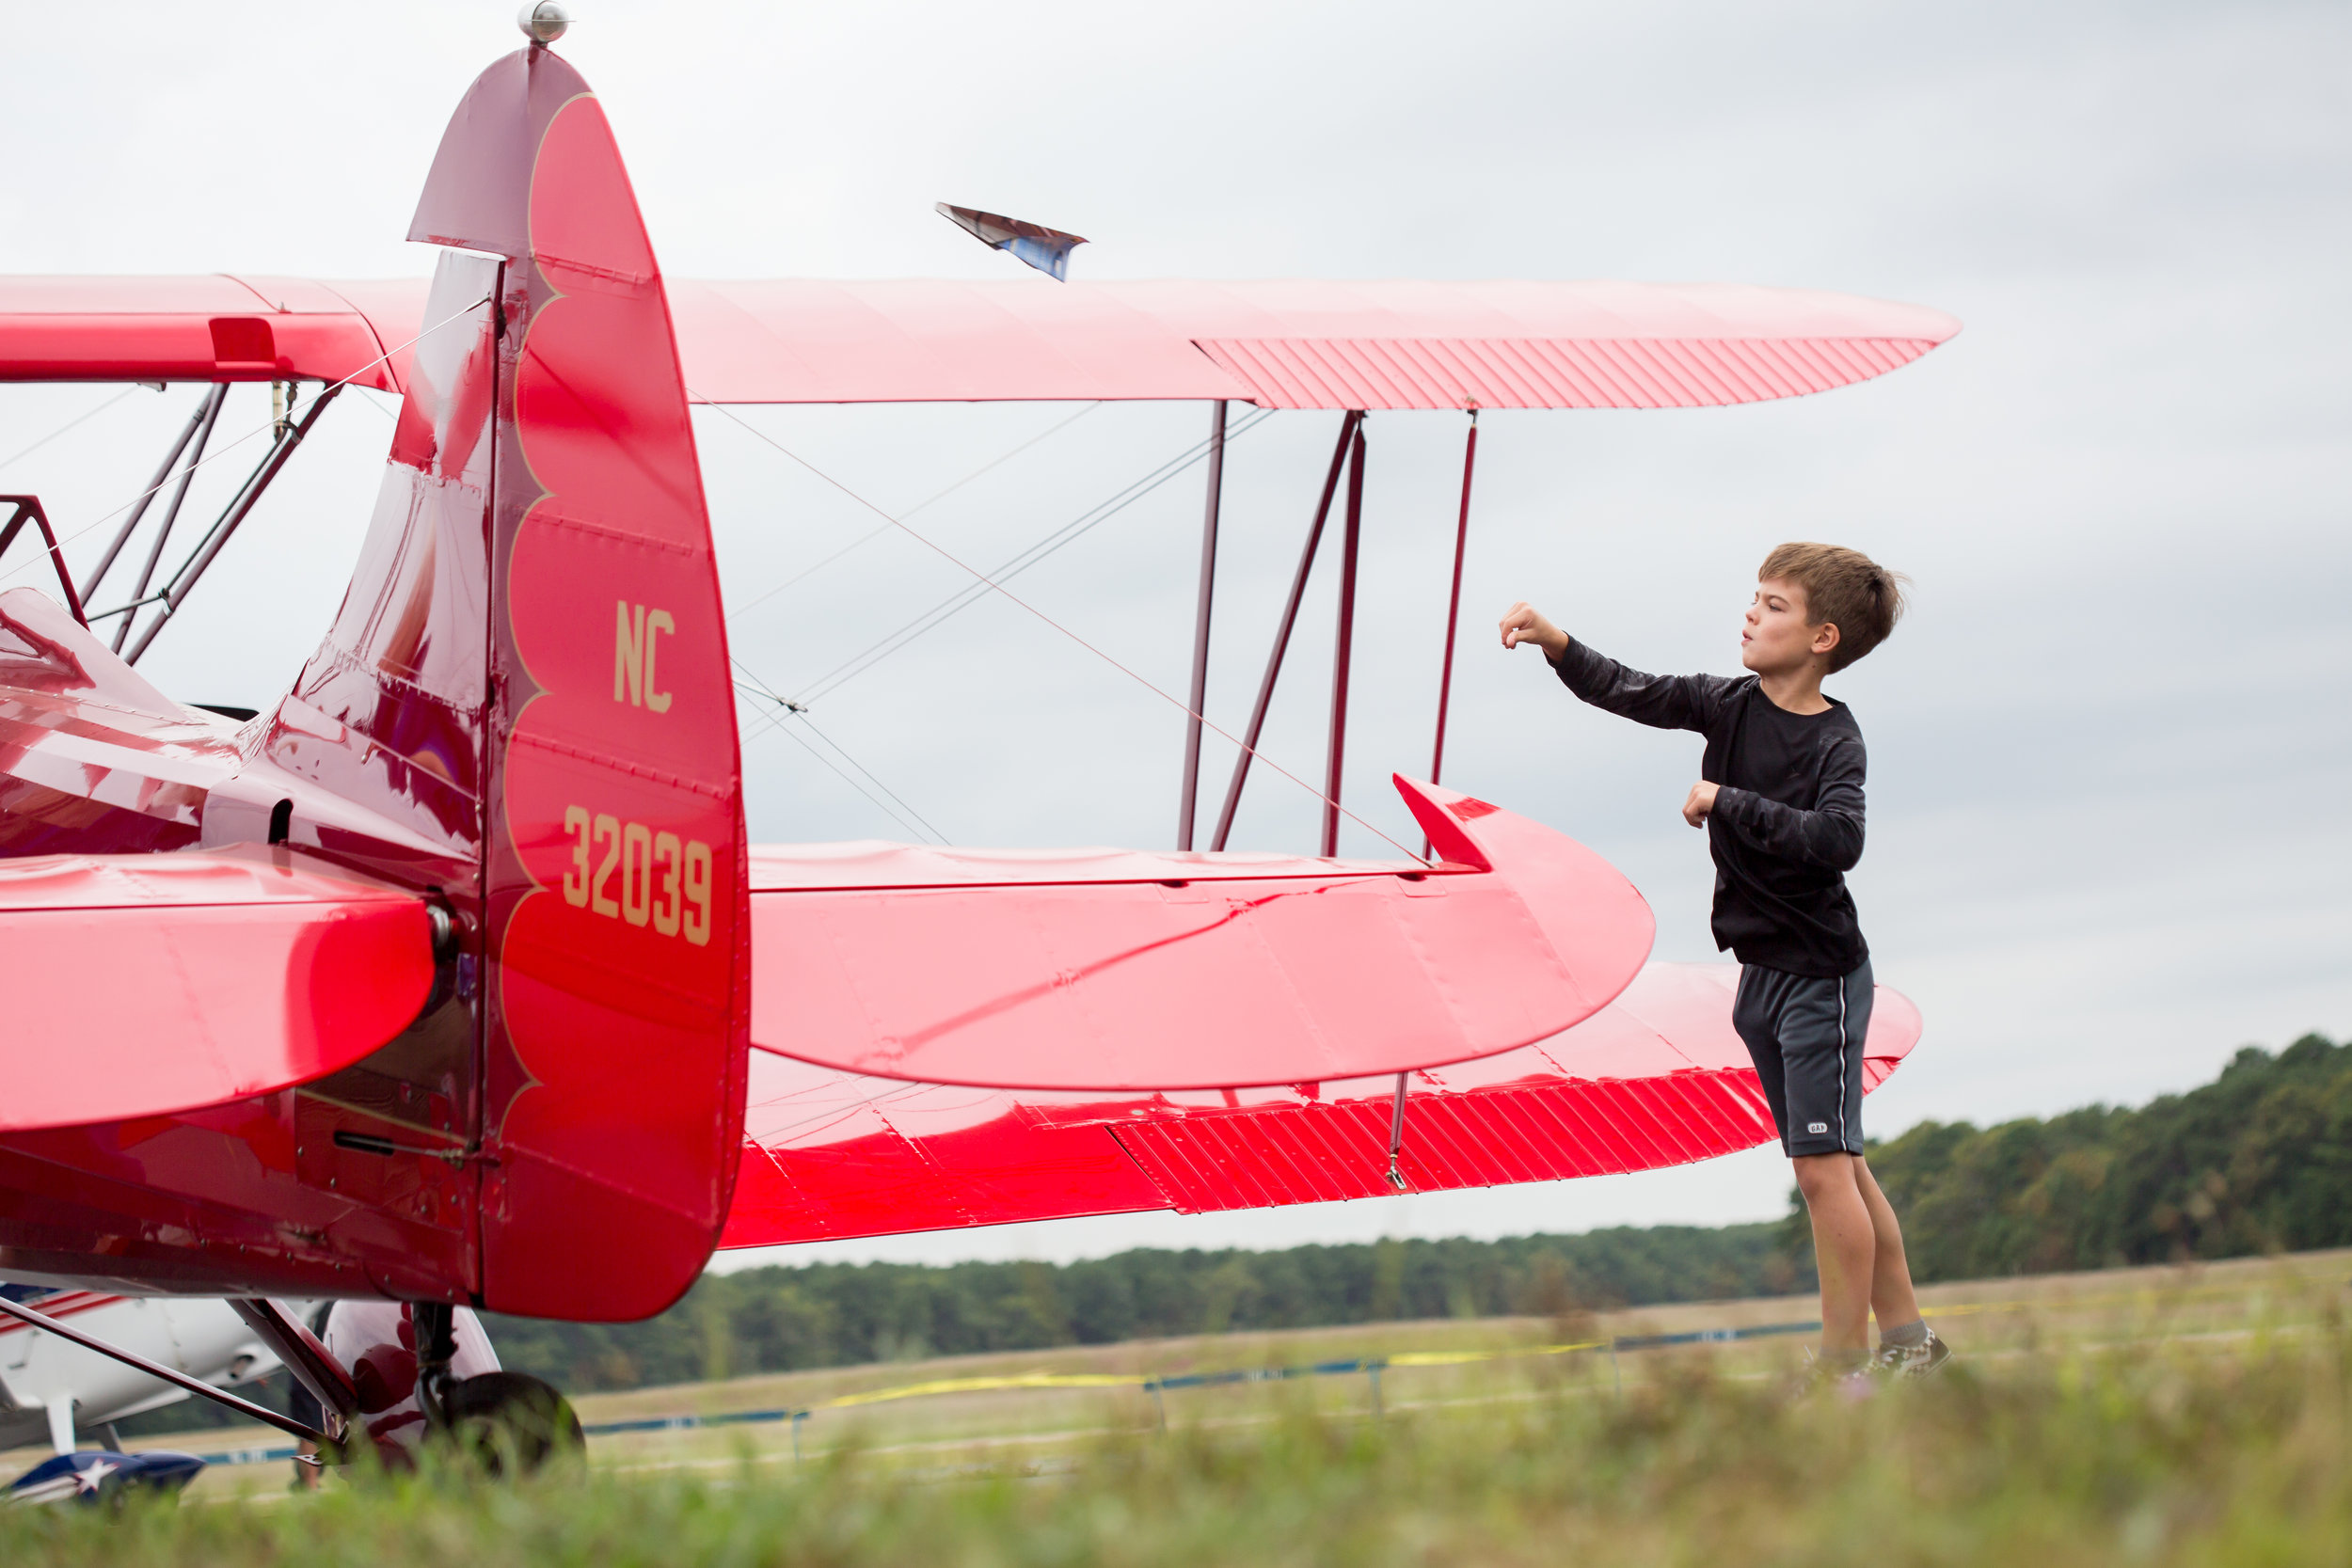 We encourage everyone to come and learn first hand the importance and many benefits of our local airport. Please come join us on September 7, 2019 to celebrate our airport's 80 year history of flight at Just Plane Fun Day. -